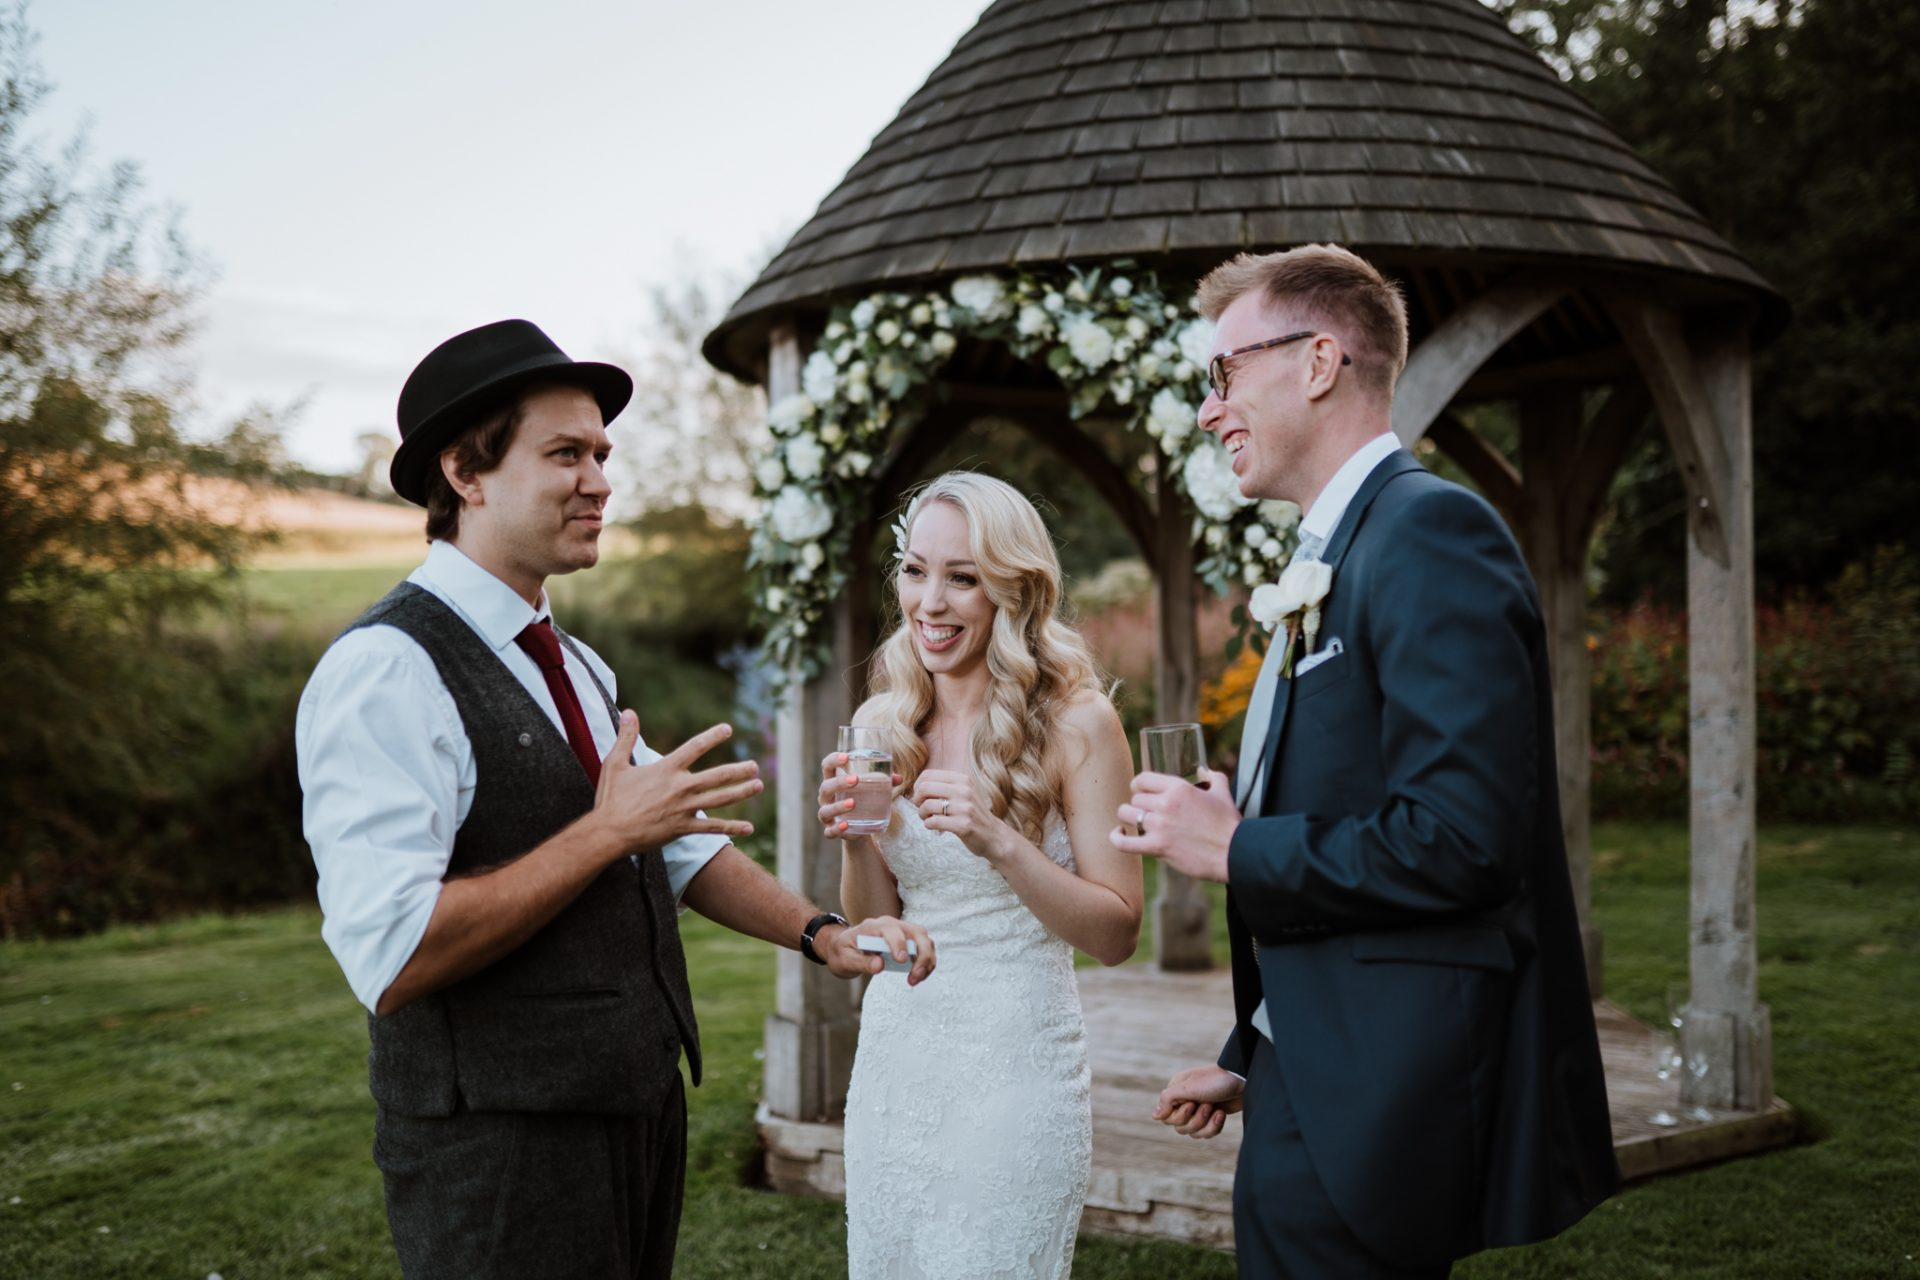 darren campbell magician showing bride and groom trick